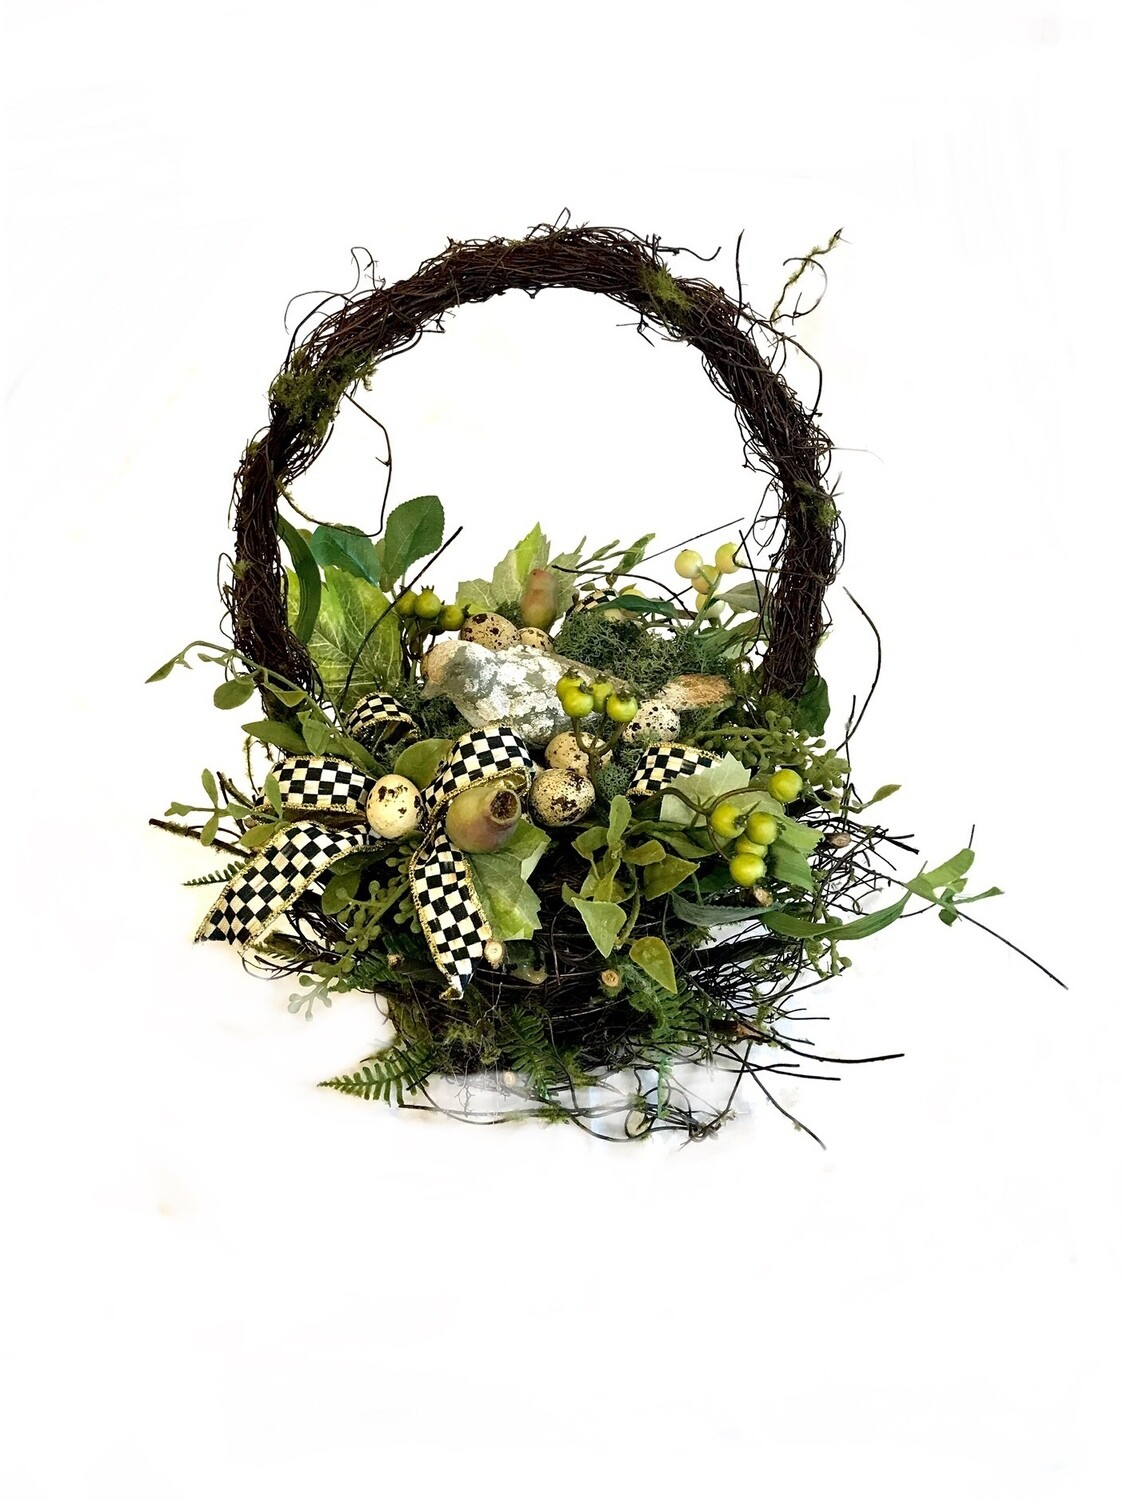 Mossy twig basket large bird floral